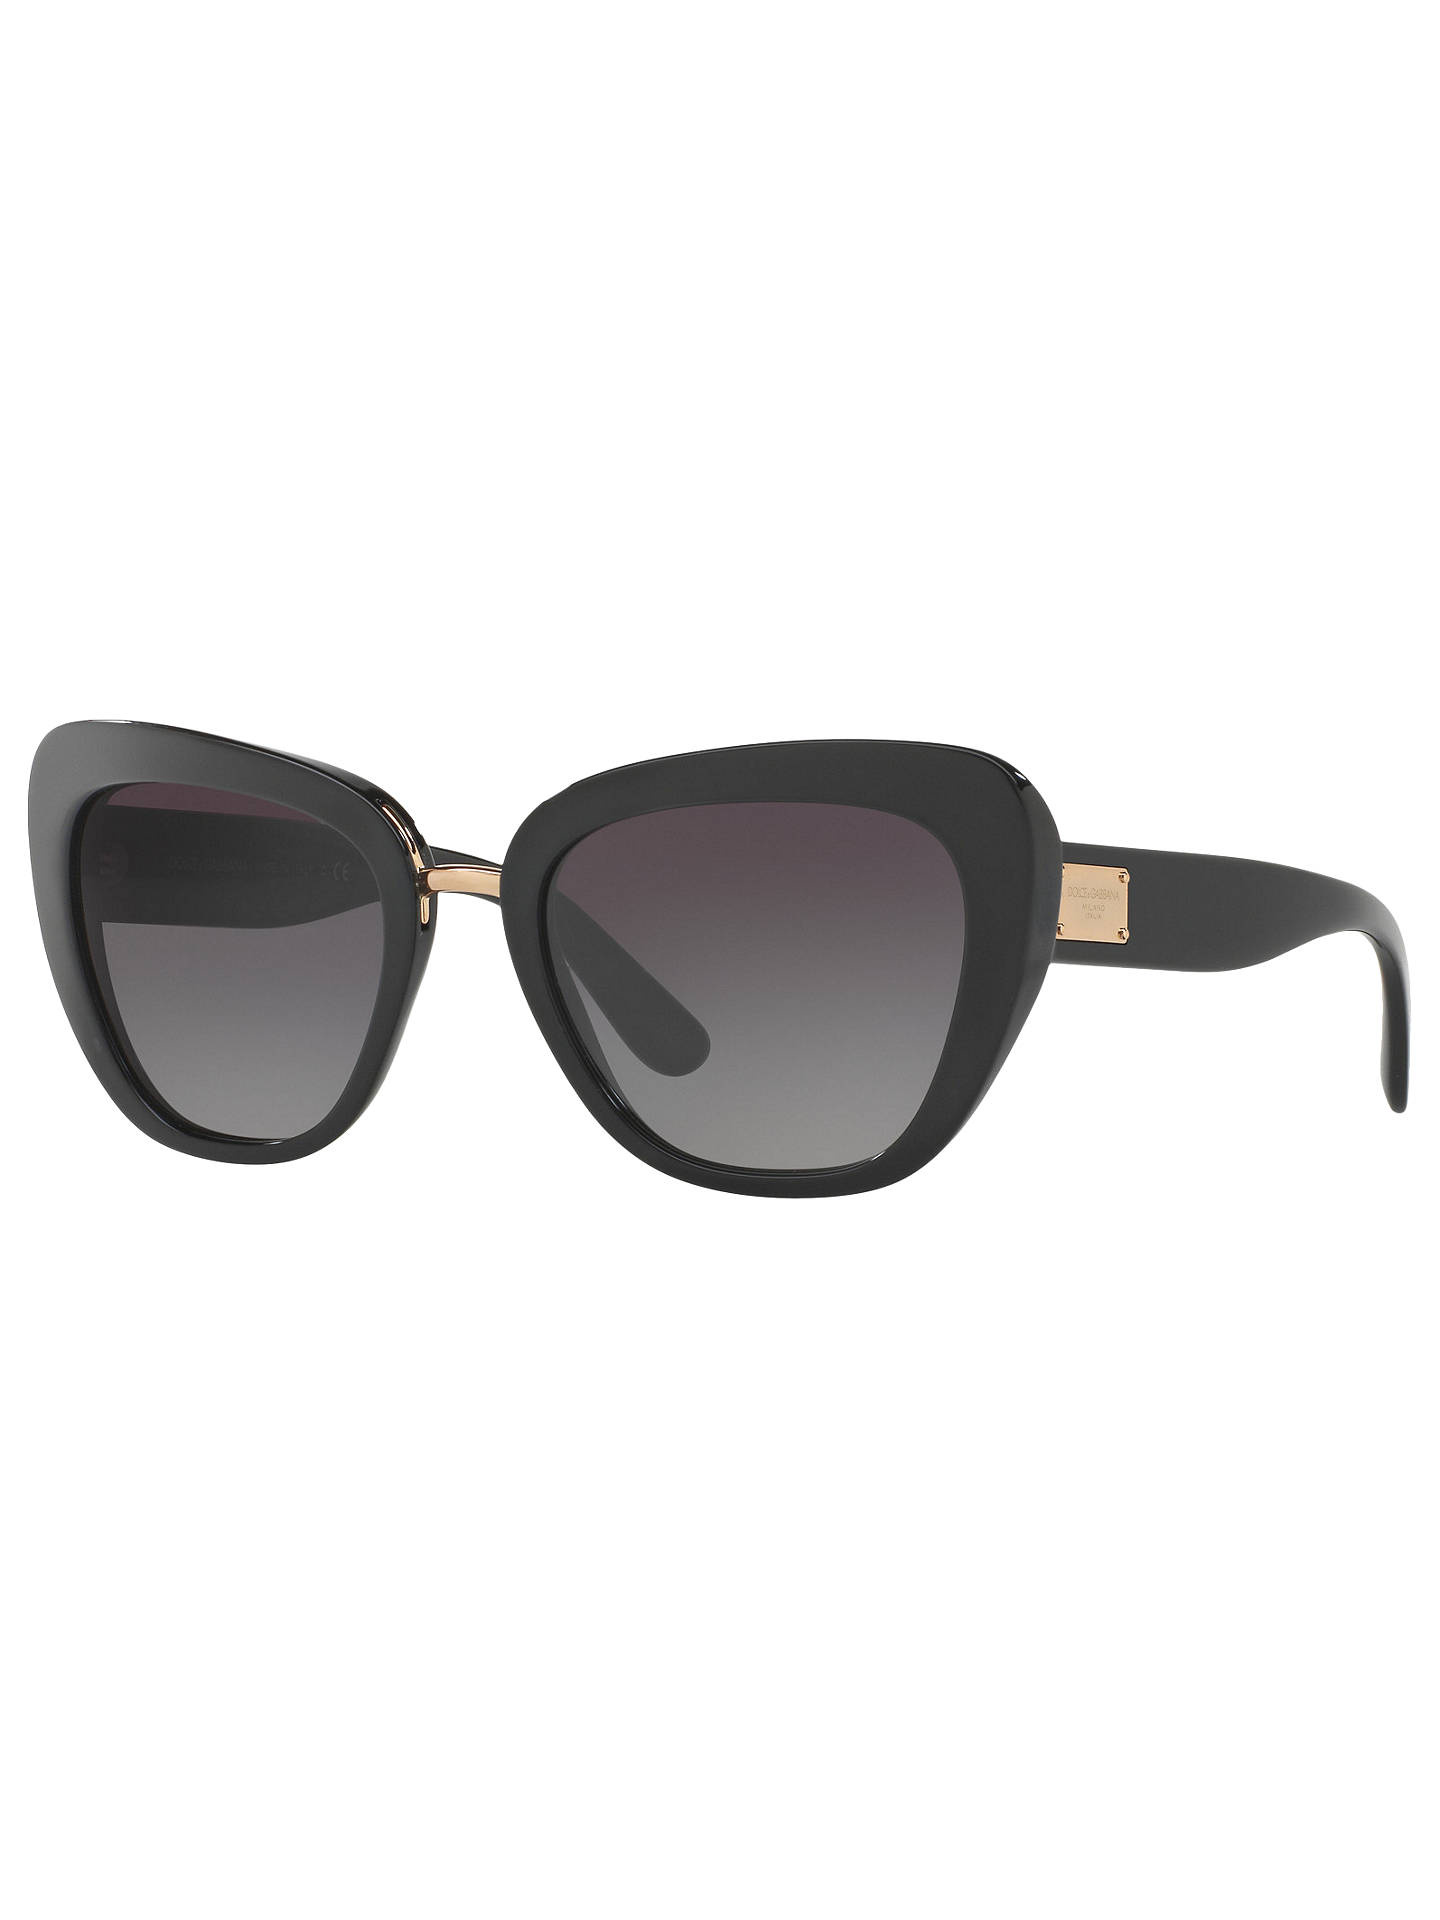 215450cccac1 Buy Dolce & Gabbana DG4296 Cat's Eye Sunglasses, Black/Grey Gradient Online  at johnlewis ...